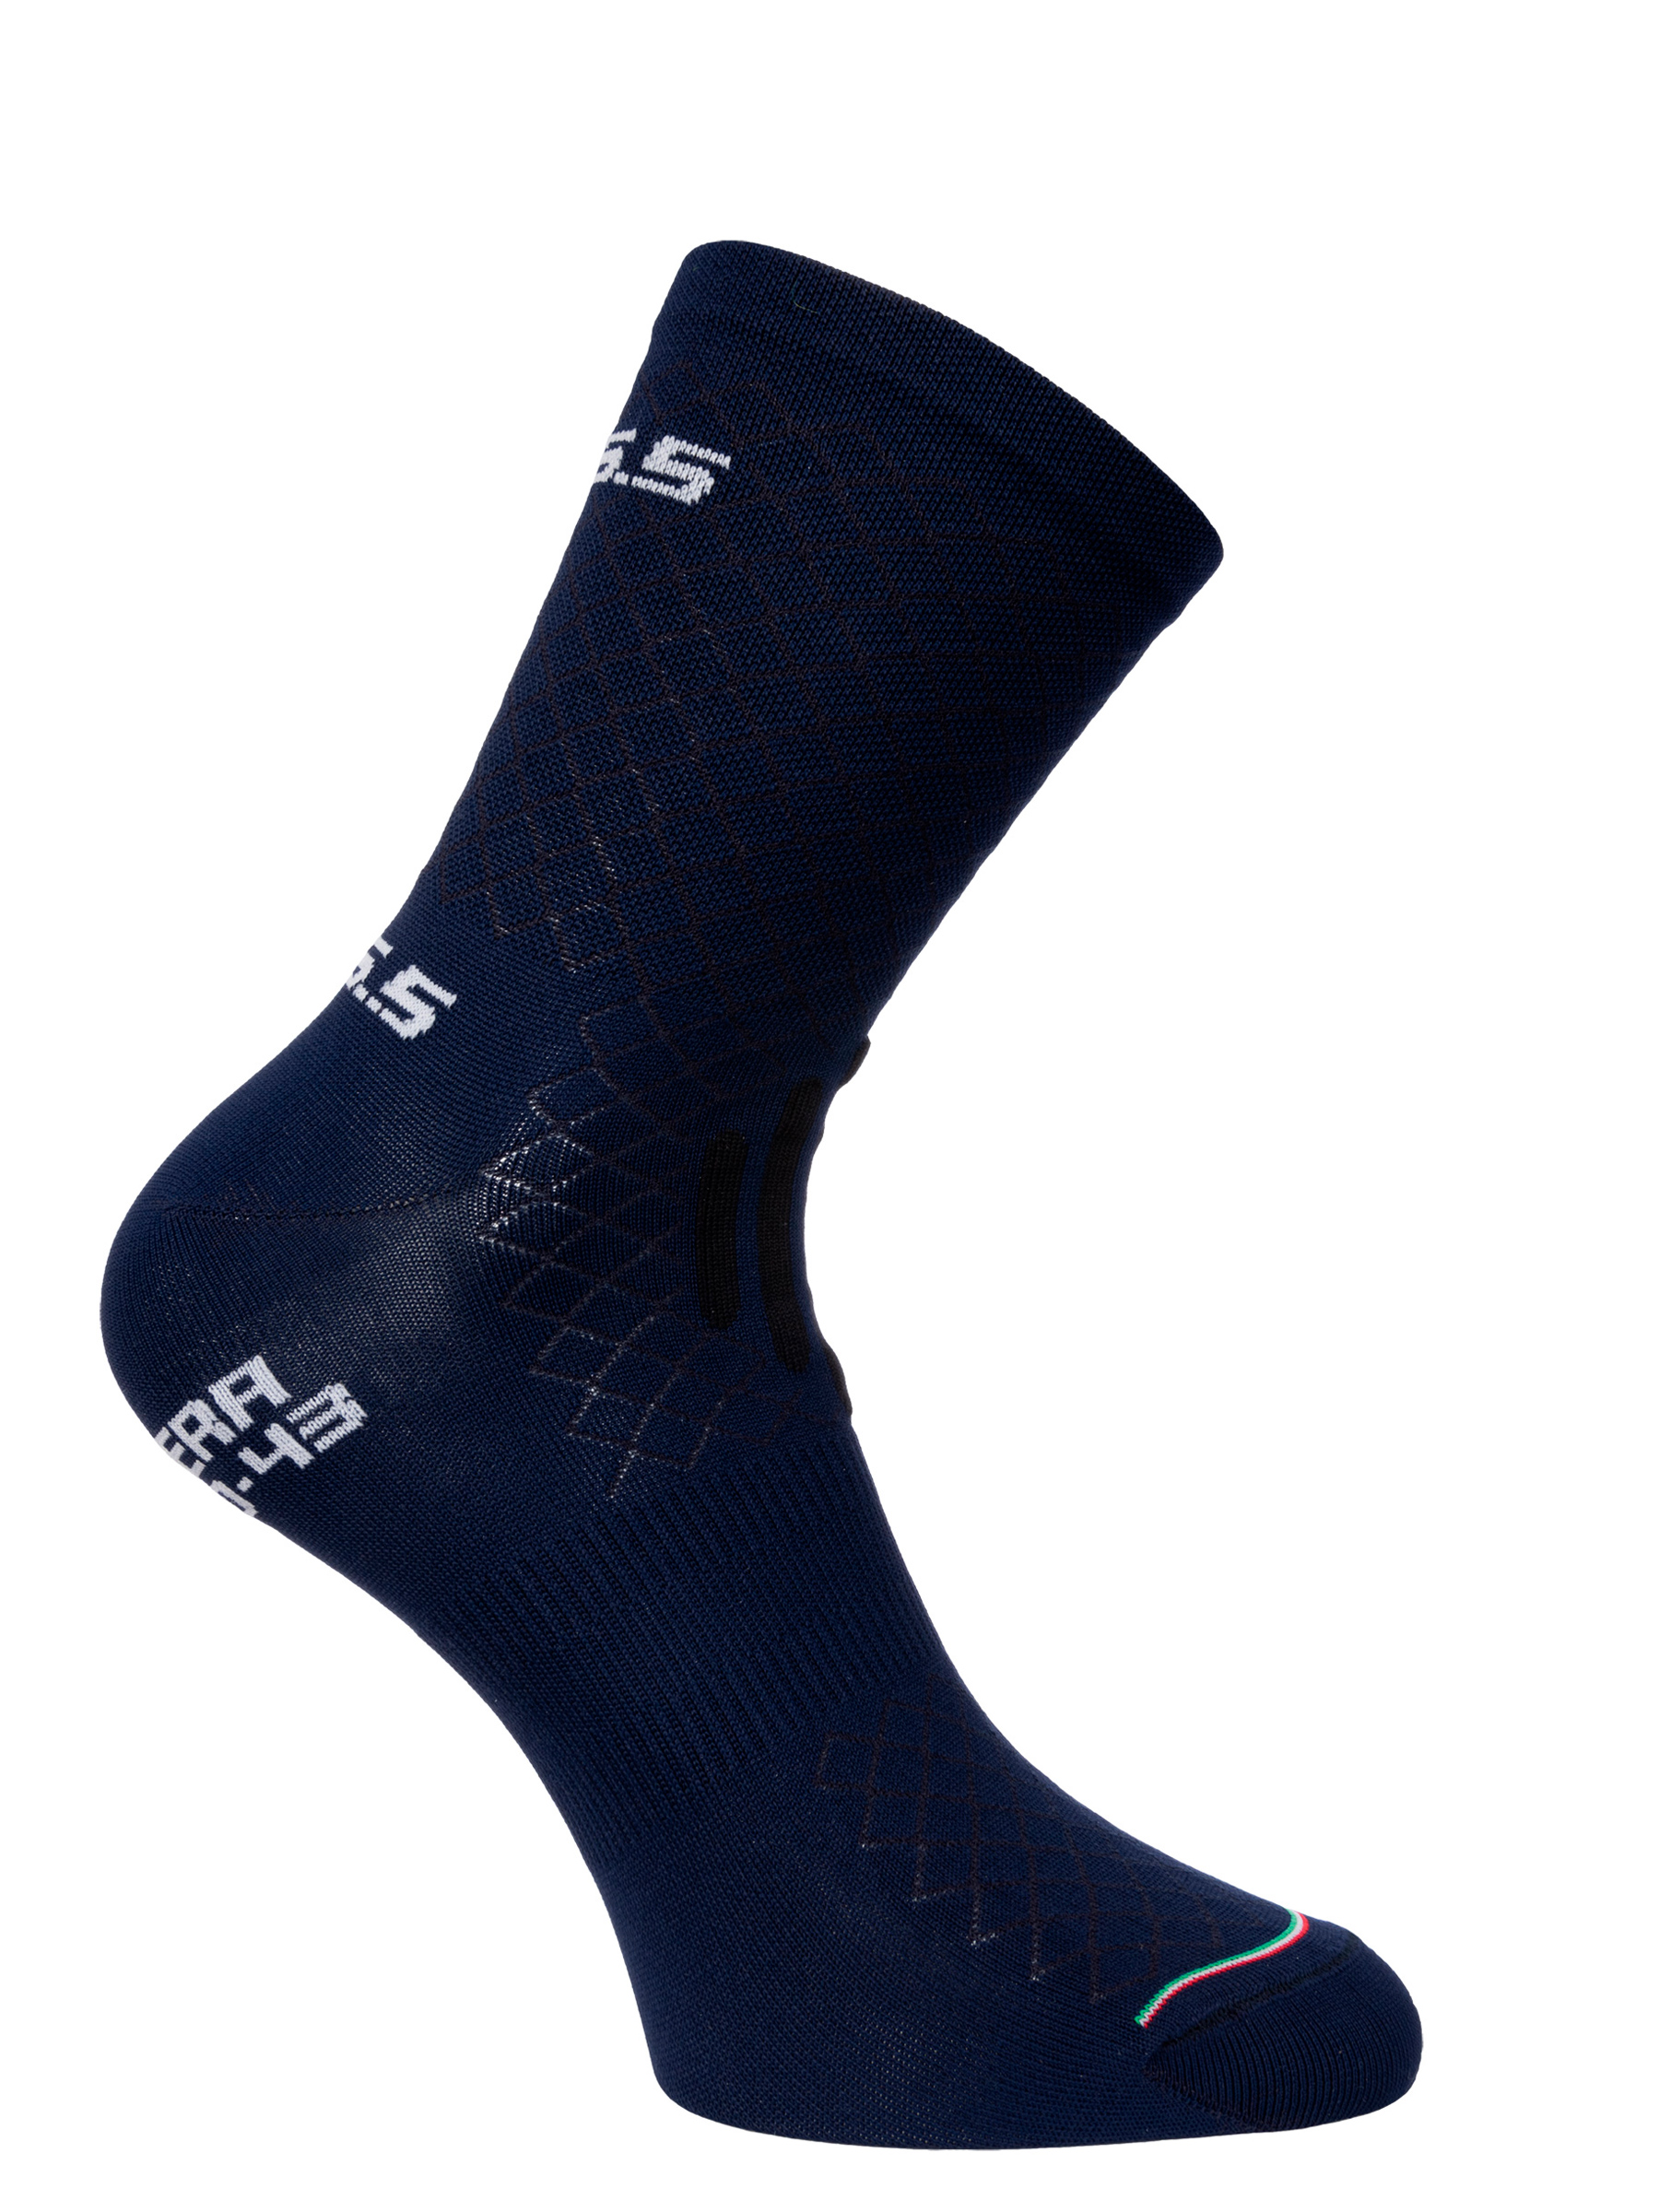 Cycling socks Leggera navy blue Q36.5 - side